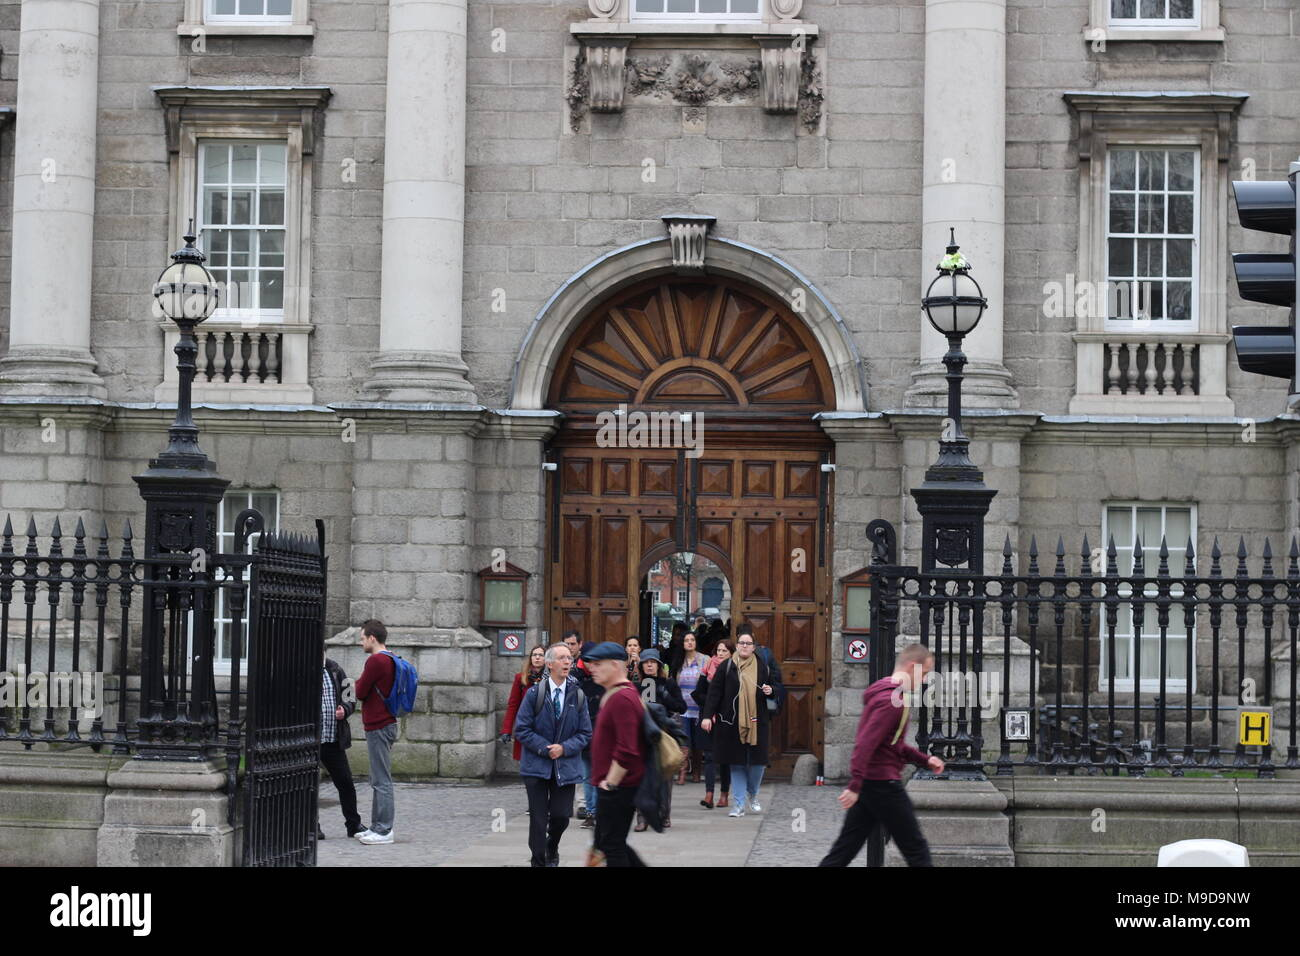 Dublin, Ireland - February 18 2018: People at Trinity College yard in Dublin, Ireland on February 18 2018 this is the largest university in Dublin and all of Ireland. - Stock Image